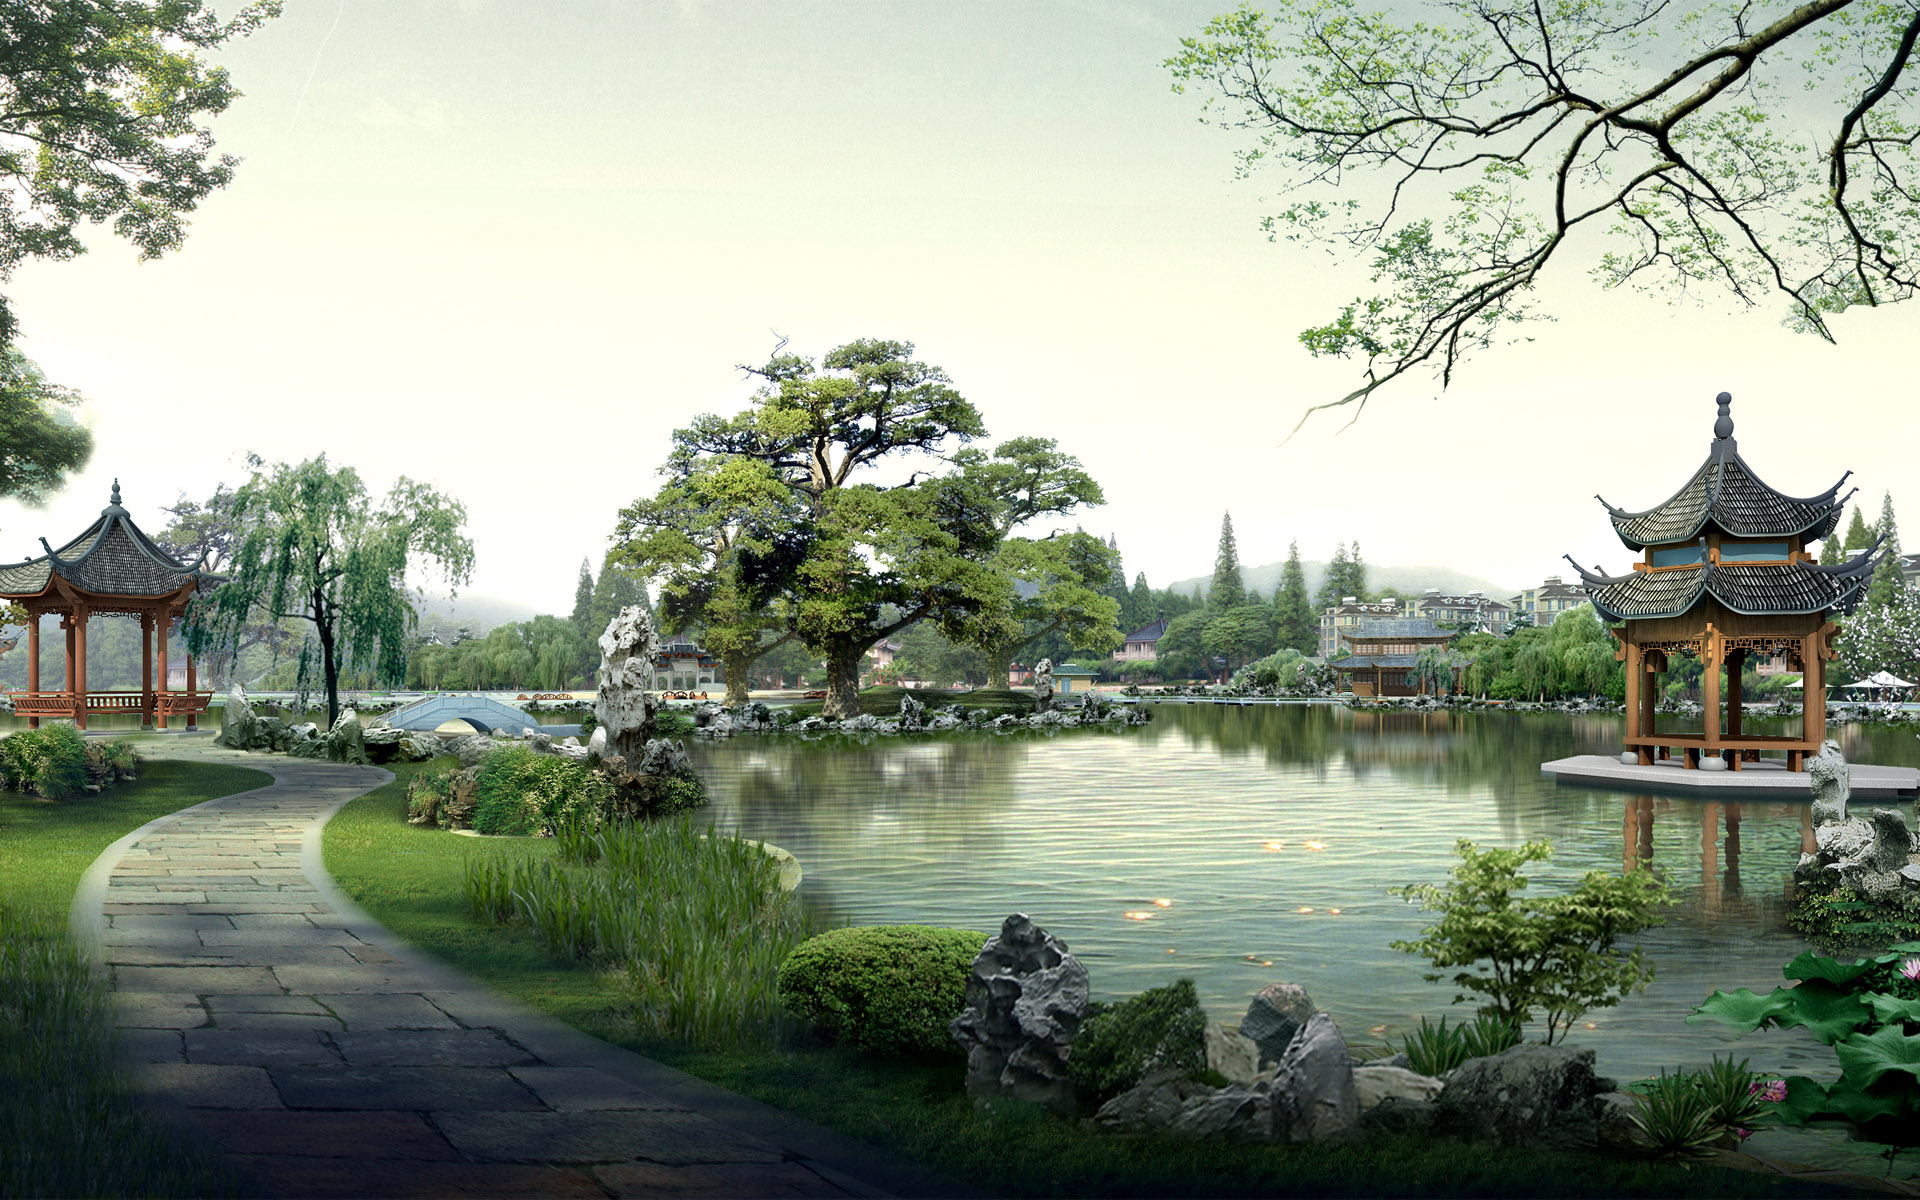 Japanese Garden Wallpapers: [45+] Japanese Garden HD Wallpaper On WallpaperSafari